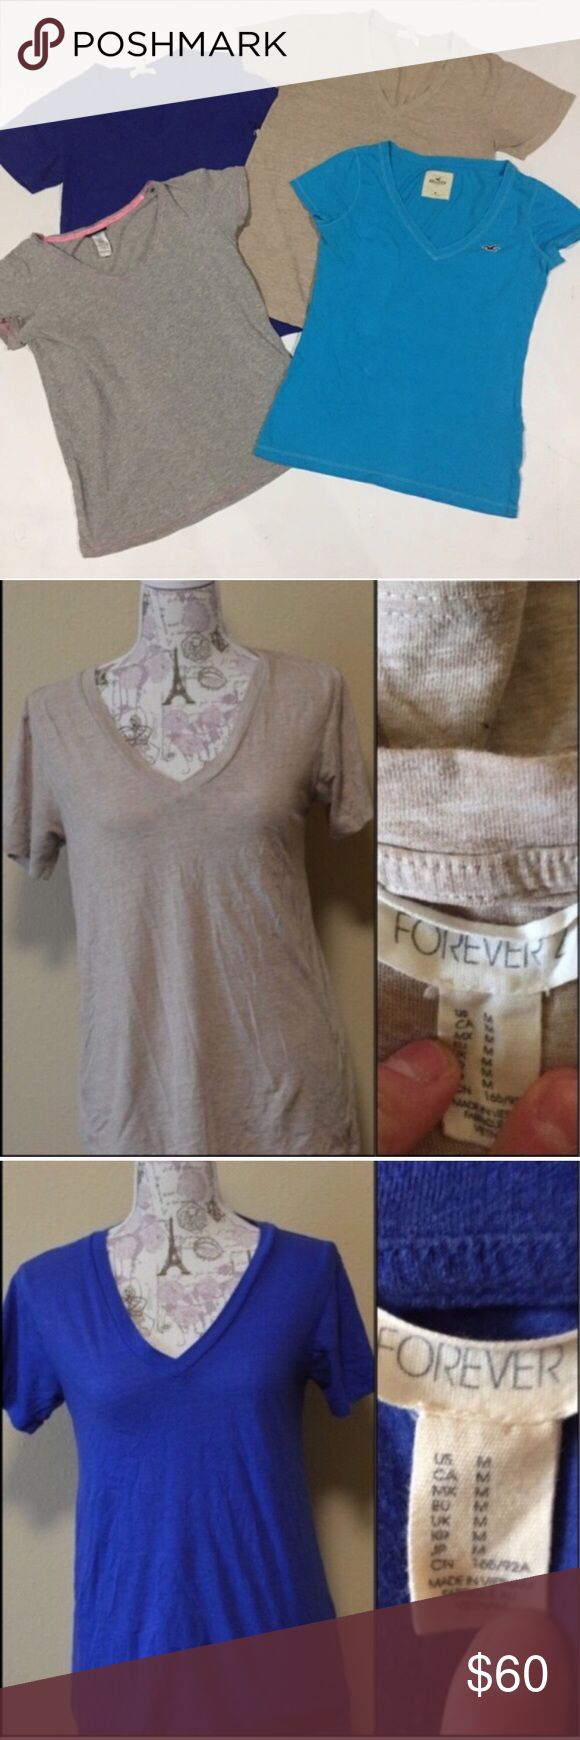 """🎉🎉Bundle of 4 V-Neck Tees Mixed Brands.    B3 Blue Hollister Length: 25"""""""" shoulder to hem Bust: 36"""" Defects: None Condition: Excellent   Gray Joe Boxer Length: 24"""""""" shoulder to hem Bust: 36"""" Defects: None Condition: Excellent   Tan & Royal Blue F21 Length: 25"""""""" shoulder to hem Bust: 36"""" Defects: None Condition: Excellent   Model Lucy Shoulders 30"""" Bust 35"""" Waist 28"""" Hips 35.5""""  Smoke free home with cats and dogs. Priced for the lot of 4 Forever 21 Tops Tees - Short Sleeve"""